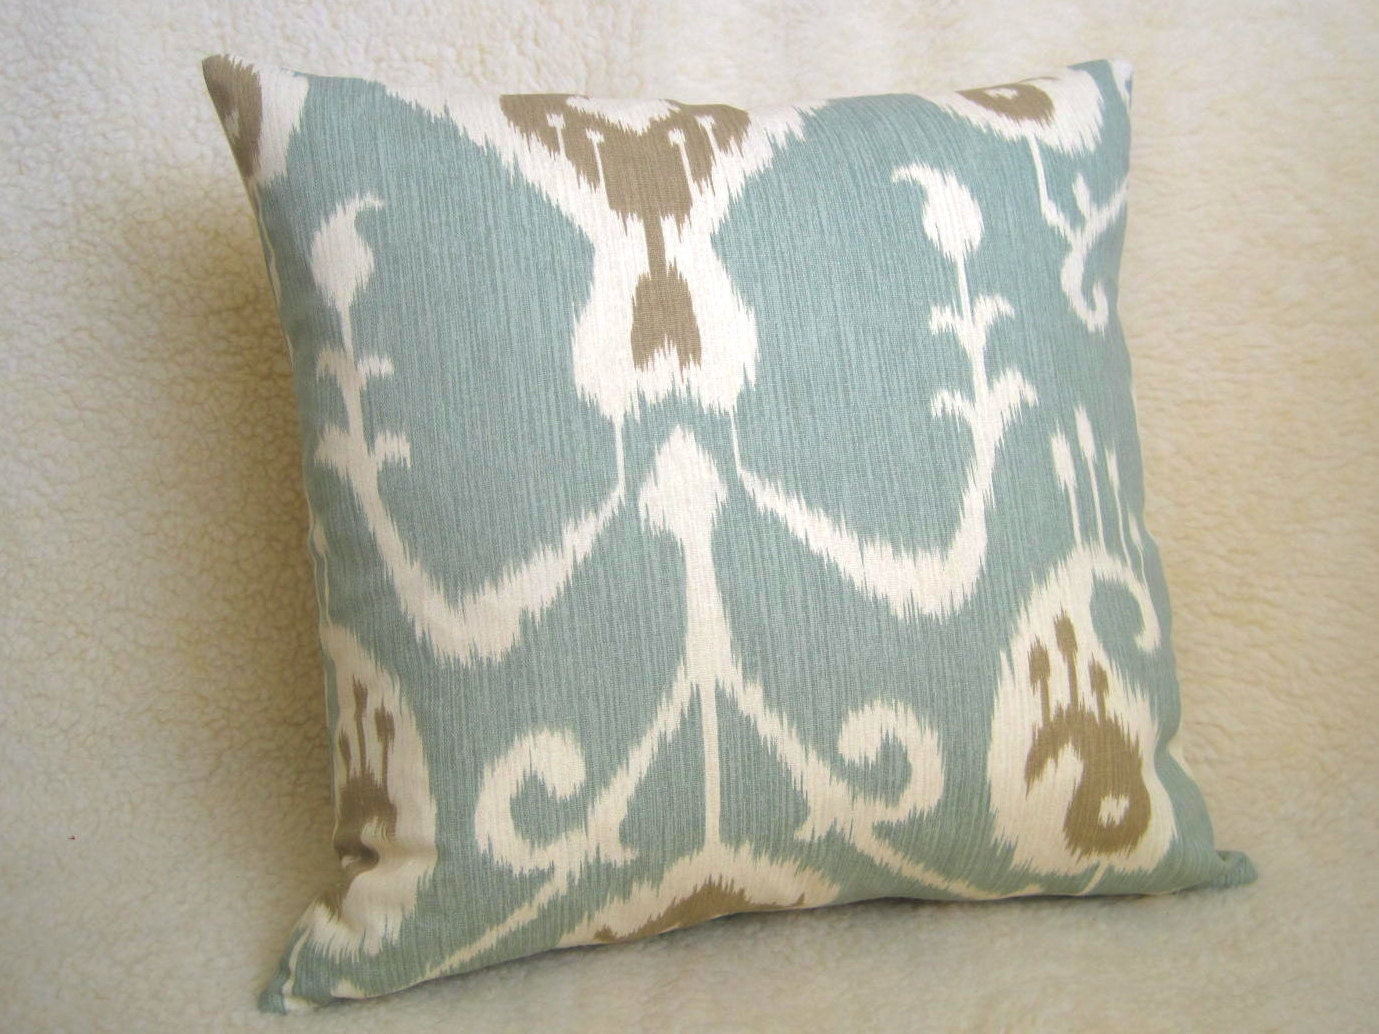 Decorative Cream Pillows : Items similar to Ikat Decorative Pillow - Light Blue - Tan - Cream - 18 inch - BOTH SIDES ...